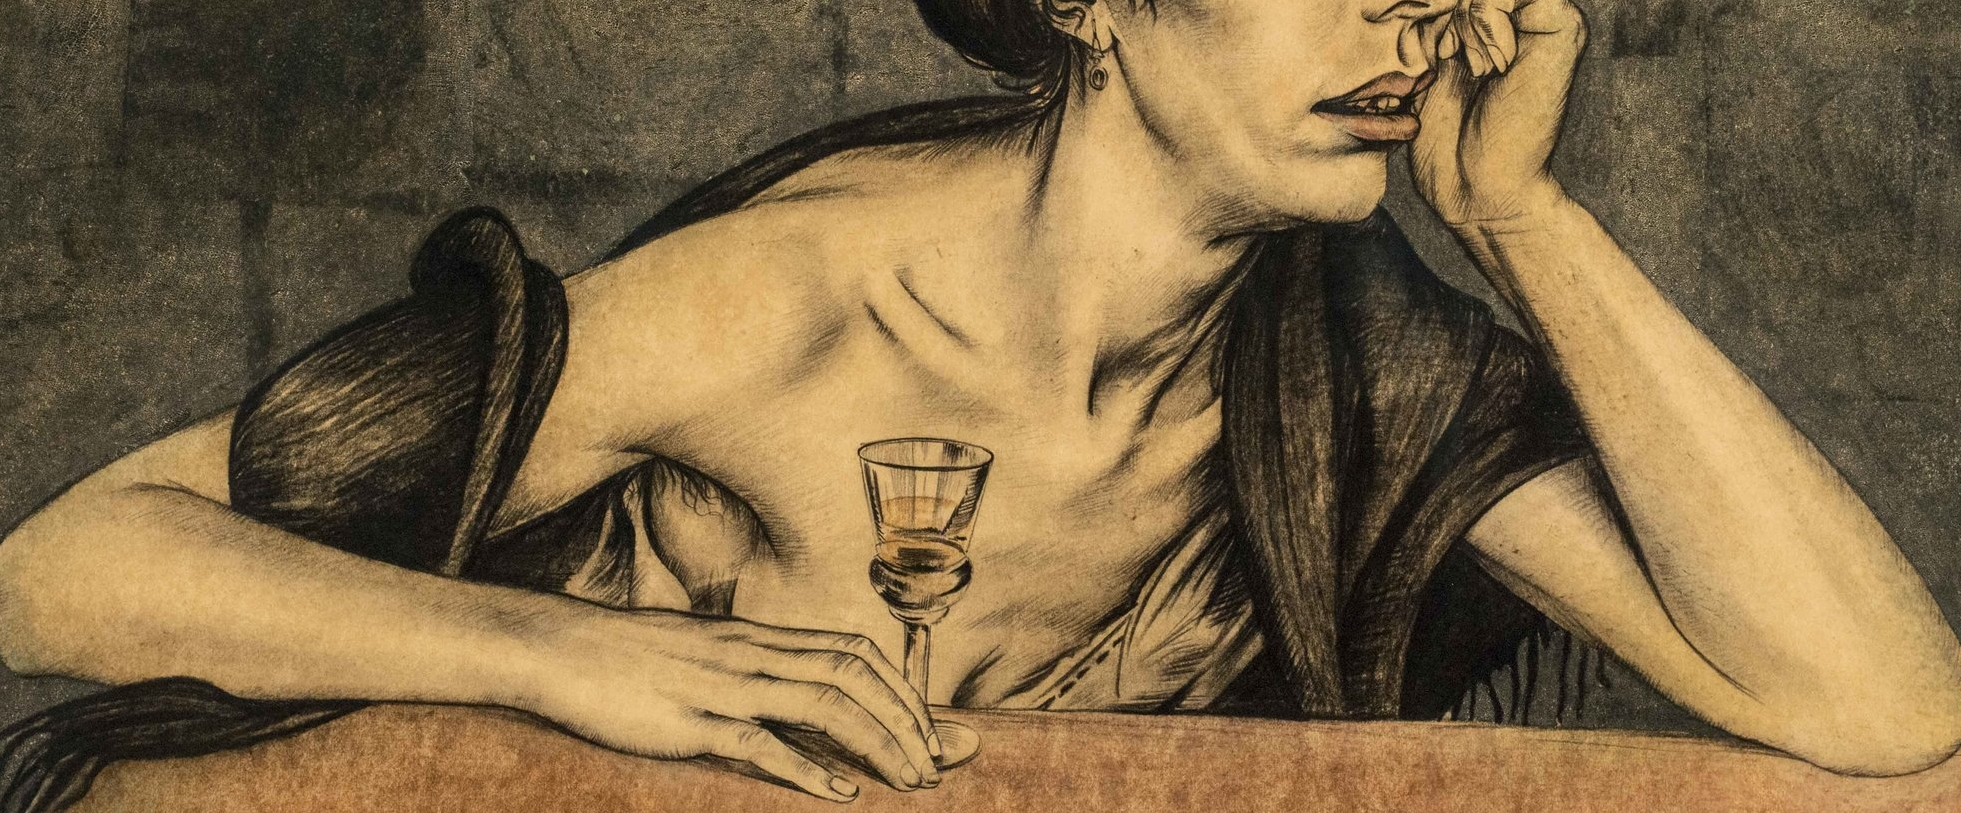 Walter Sauer, Woman from the Borinage, detail image